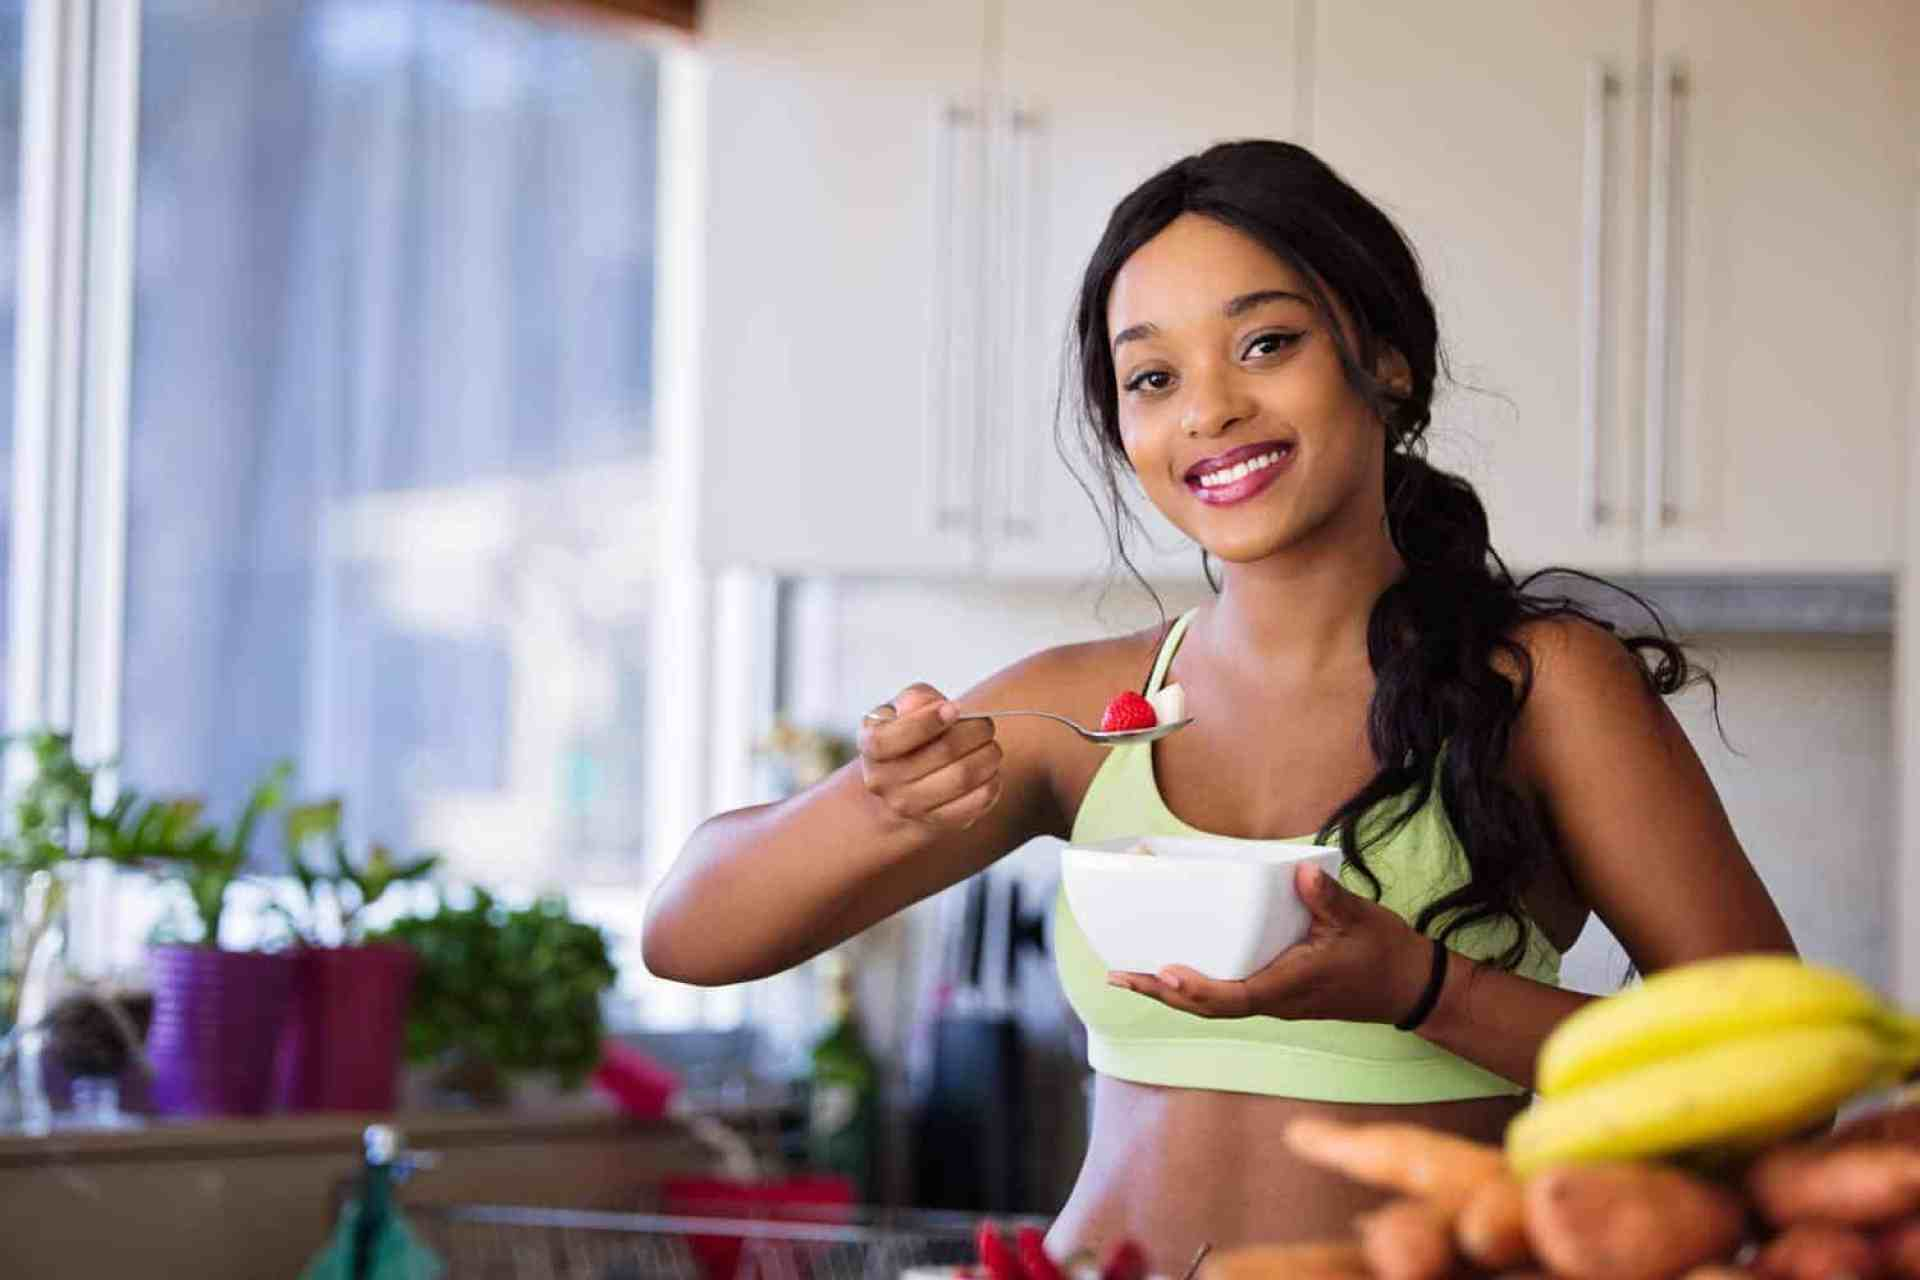 Eating healthy is easier than you'd think. Here are a few cost-effective heart-healthy foods to keep at home.